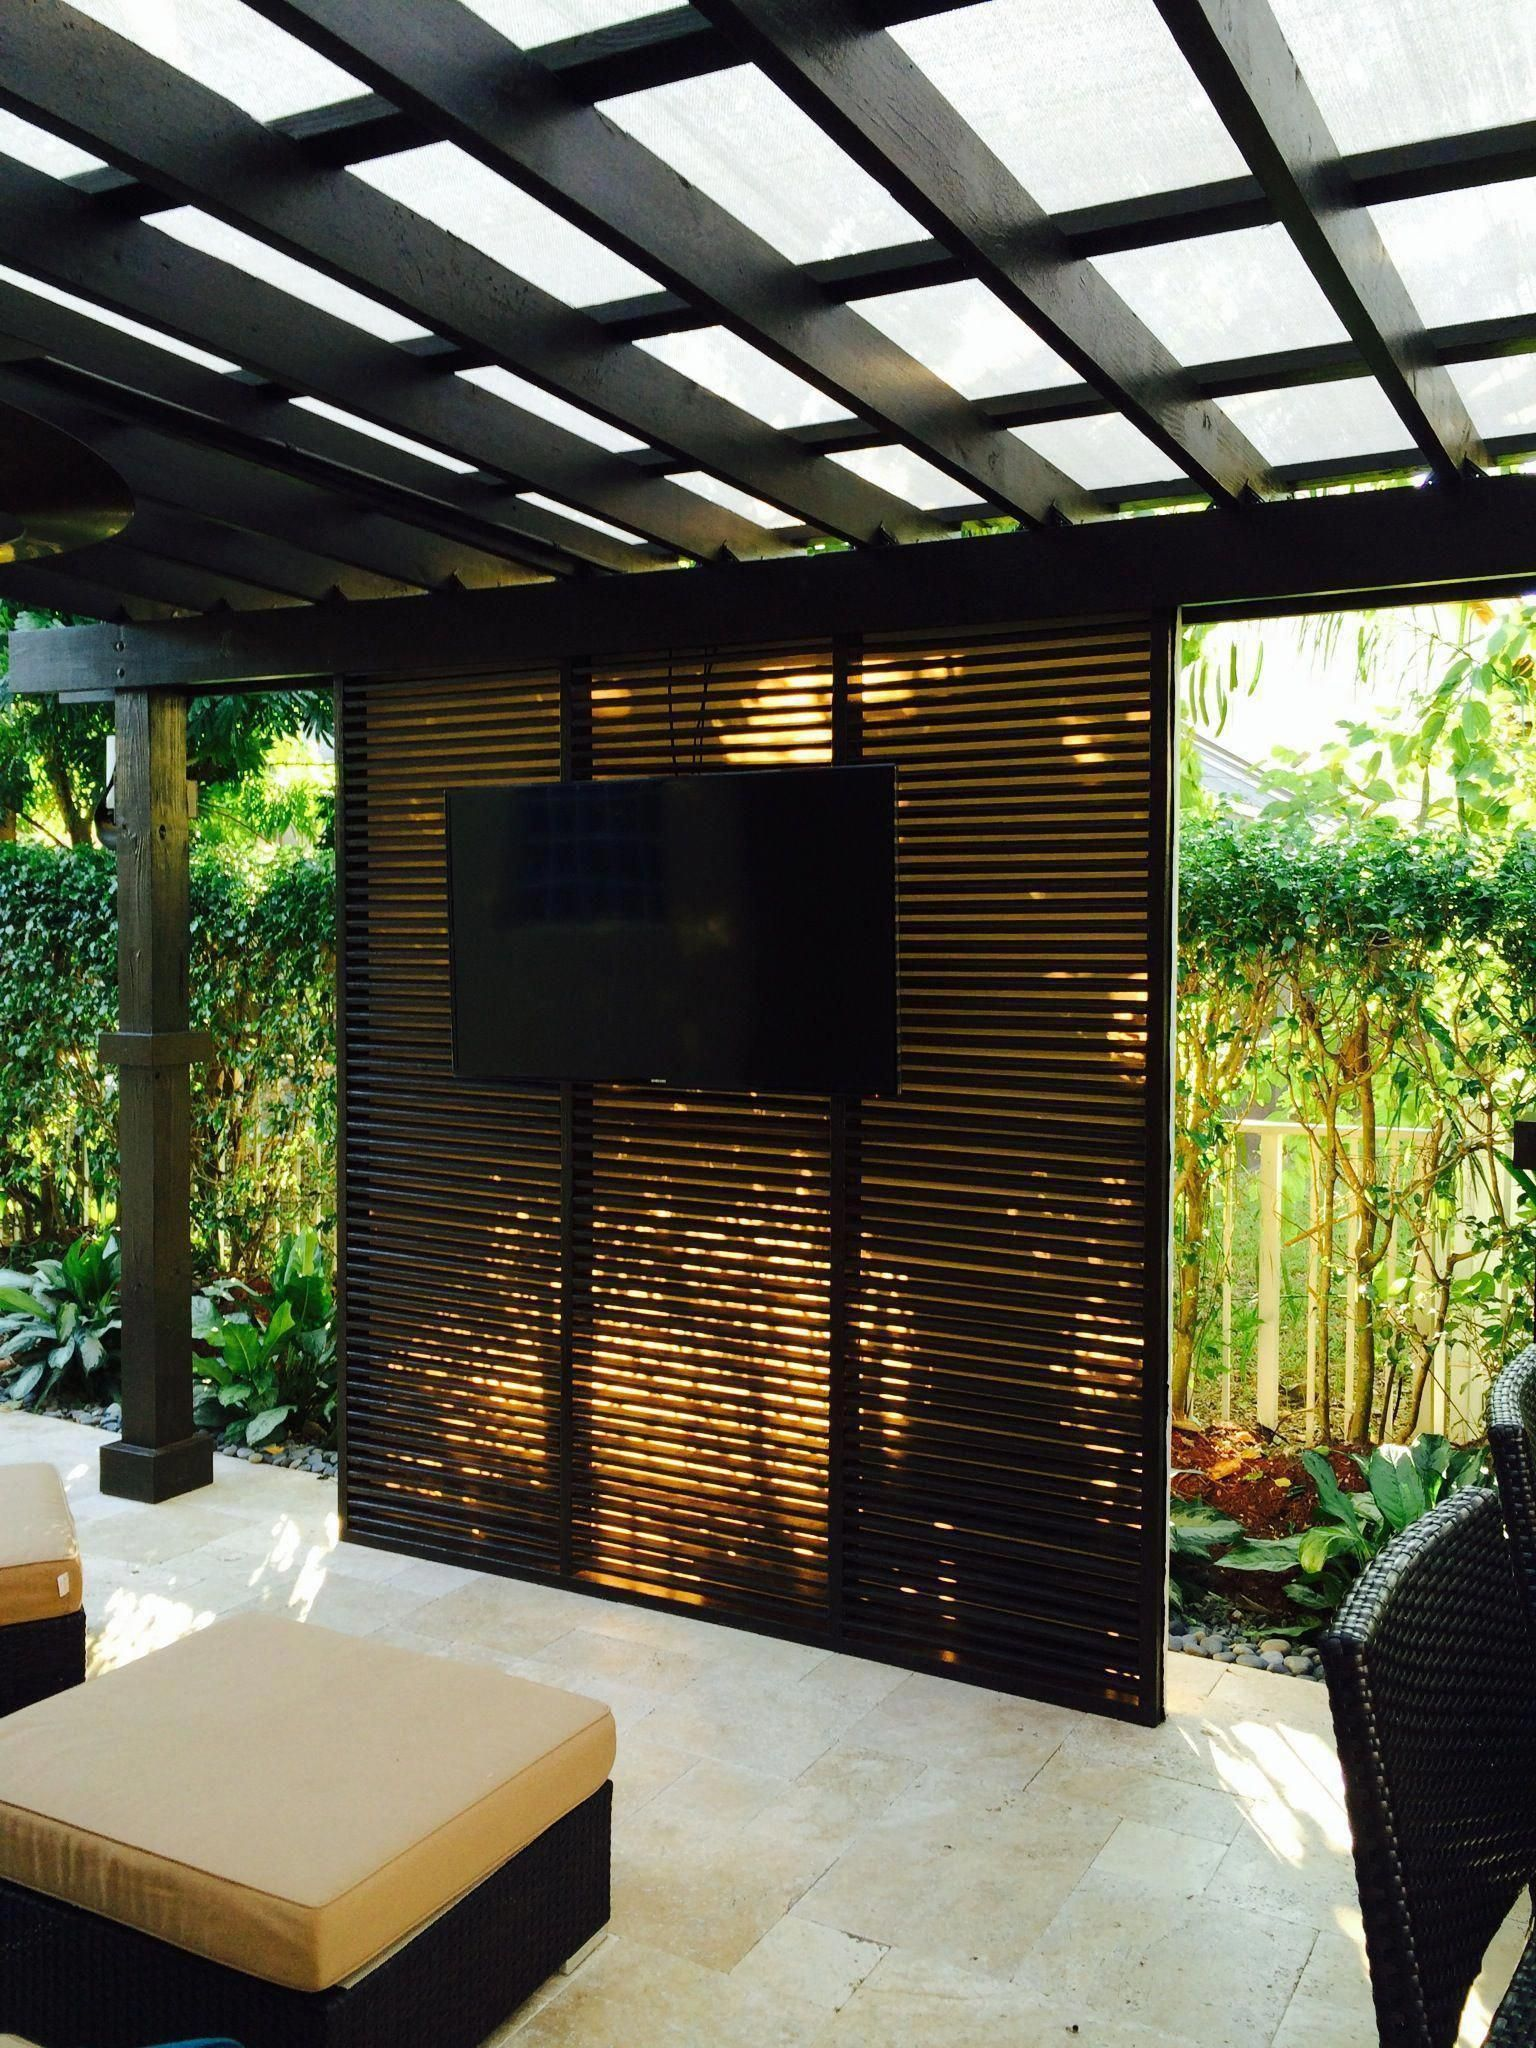 Pergola With Glass Roof Code 3486416603 Pergolanewyorkcity Pergola Shade Pergola Pergola Patio